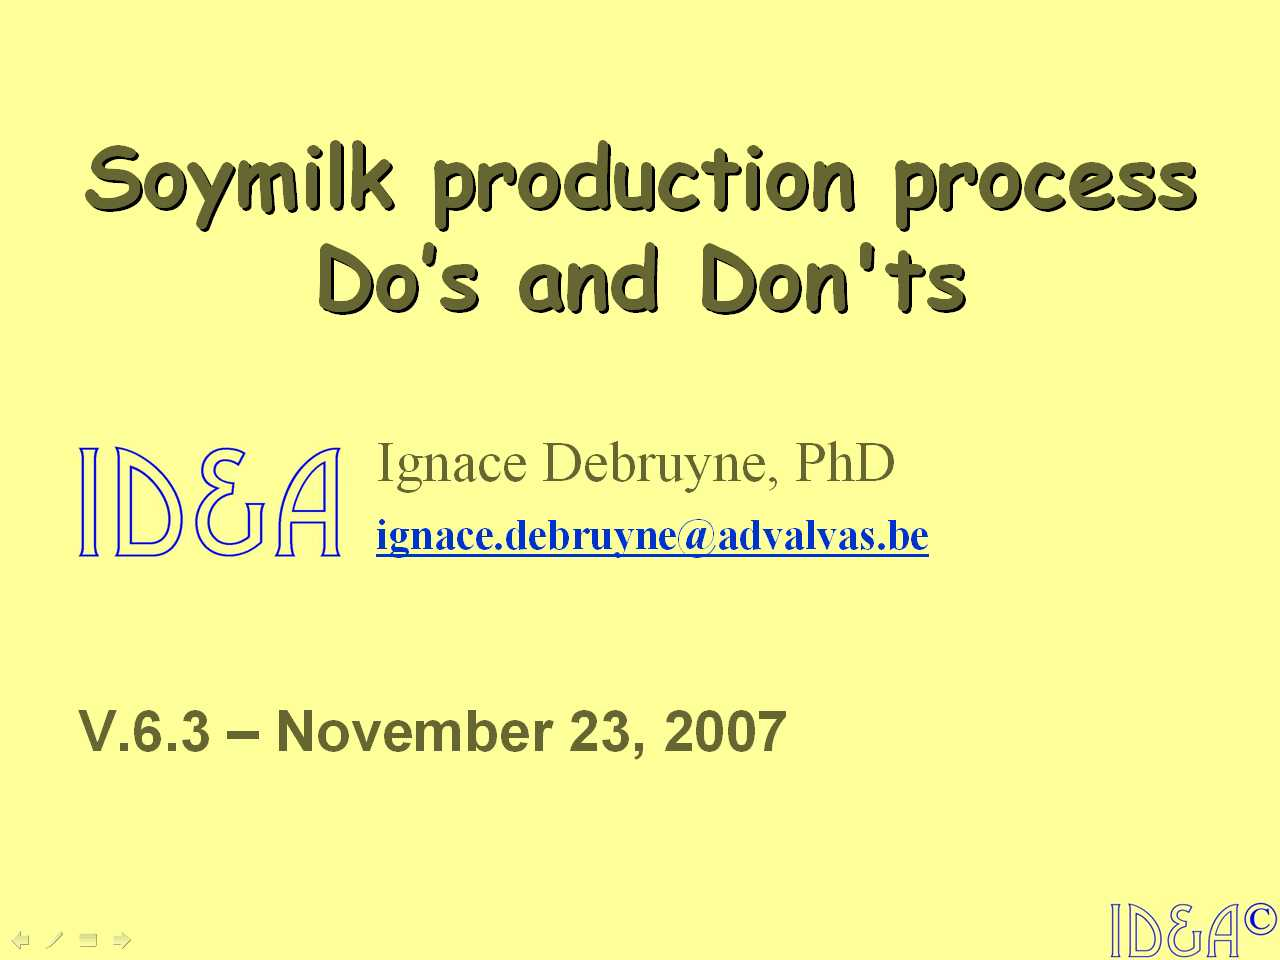 DO's and DON'ts in Soymilk Technology